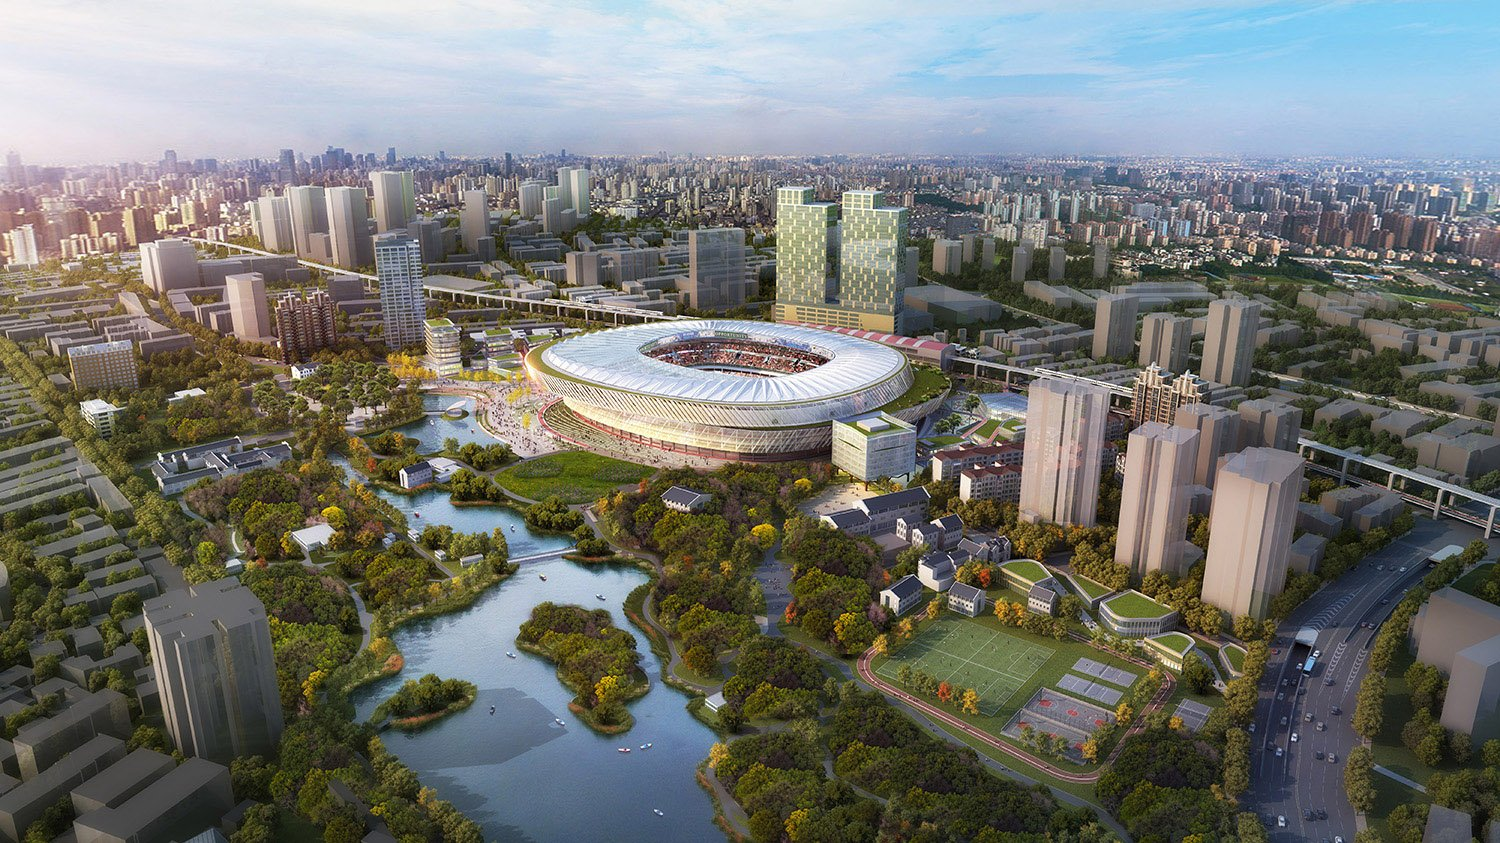 Located adjacent to Luxun Park, the park's landscape is extended through the stadium to created an integrated experience. SASAKI